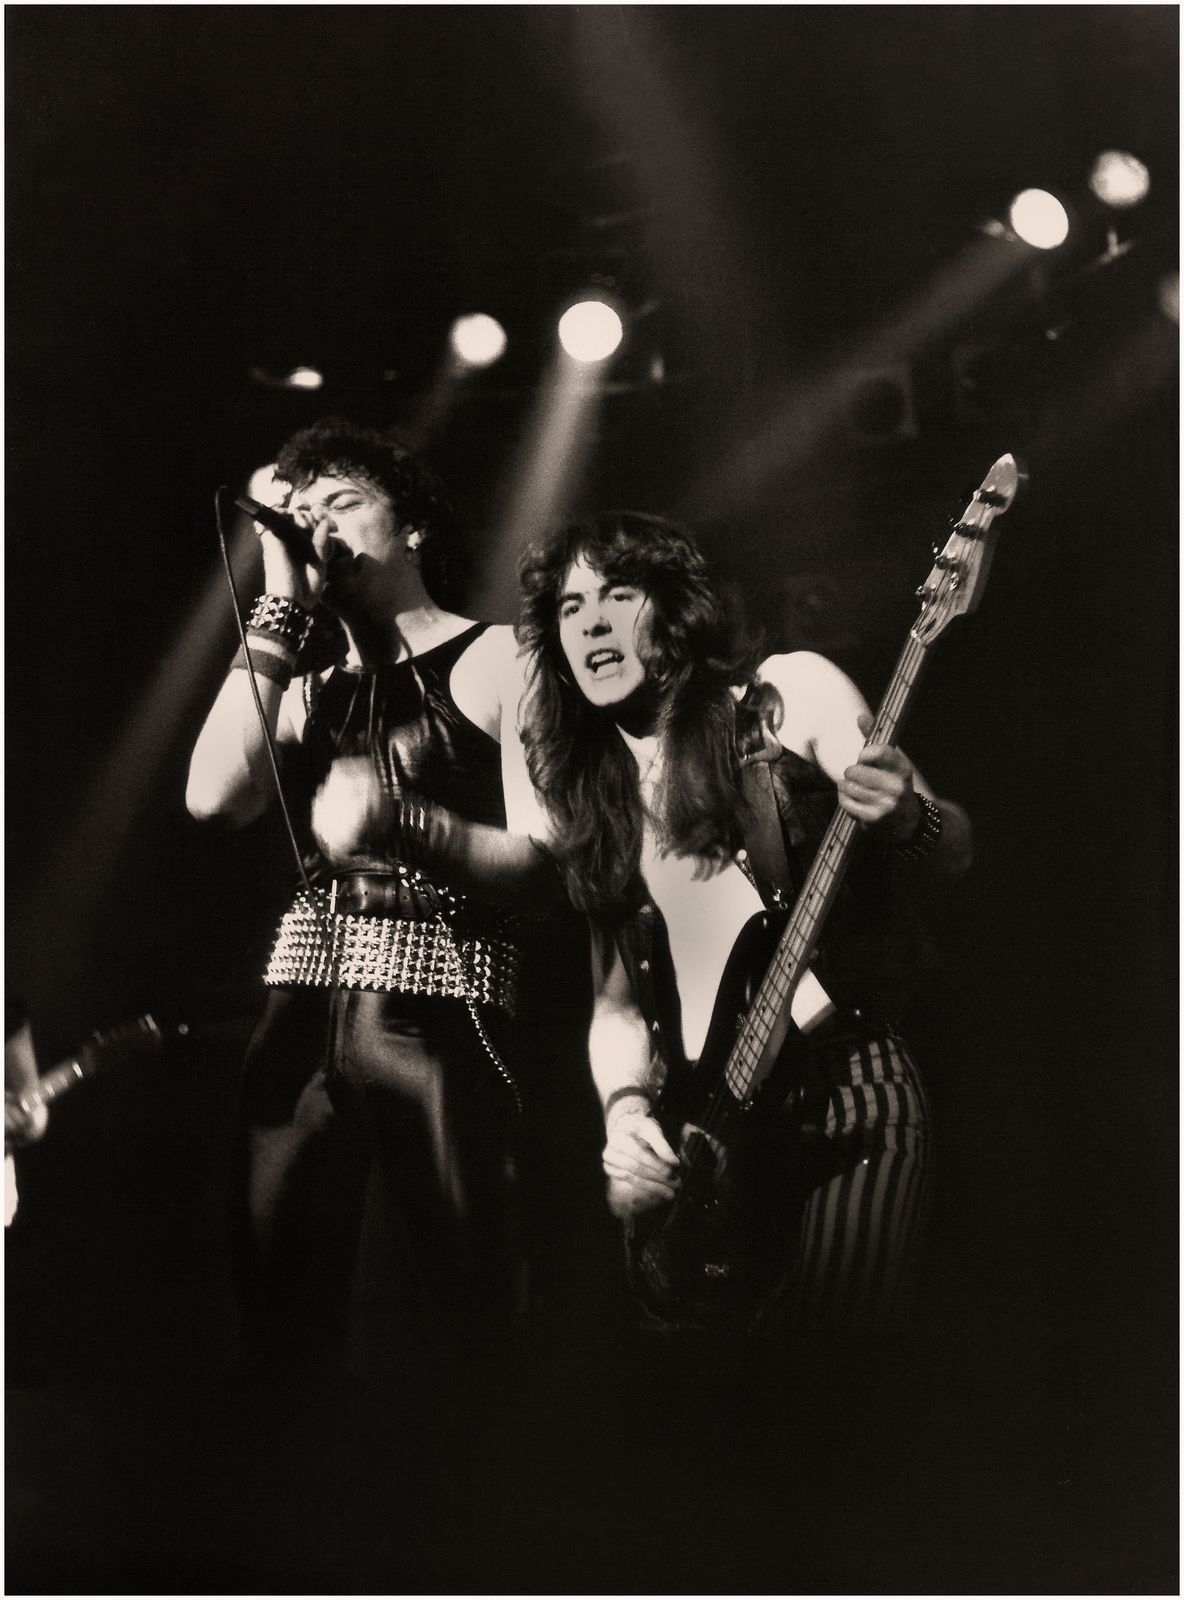 Steve Harris and original vocalist Paul Di'Anno (IRON MAIDEN) -  supporting Judas Priest on their British Steel Tour, Manchester, Apollo (1980)